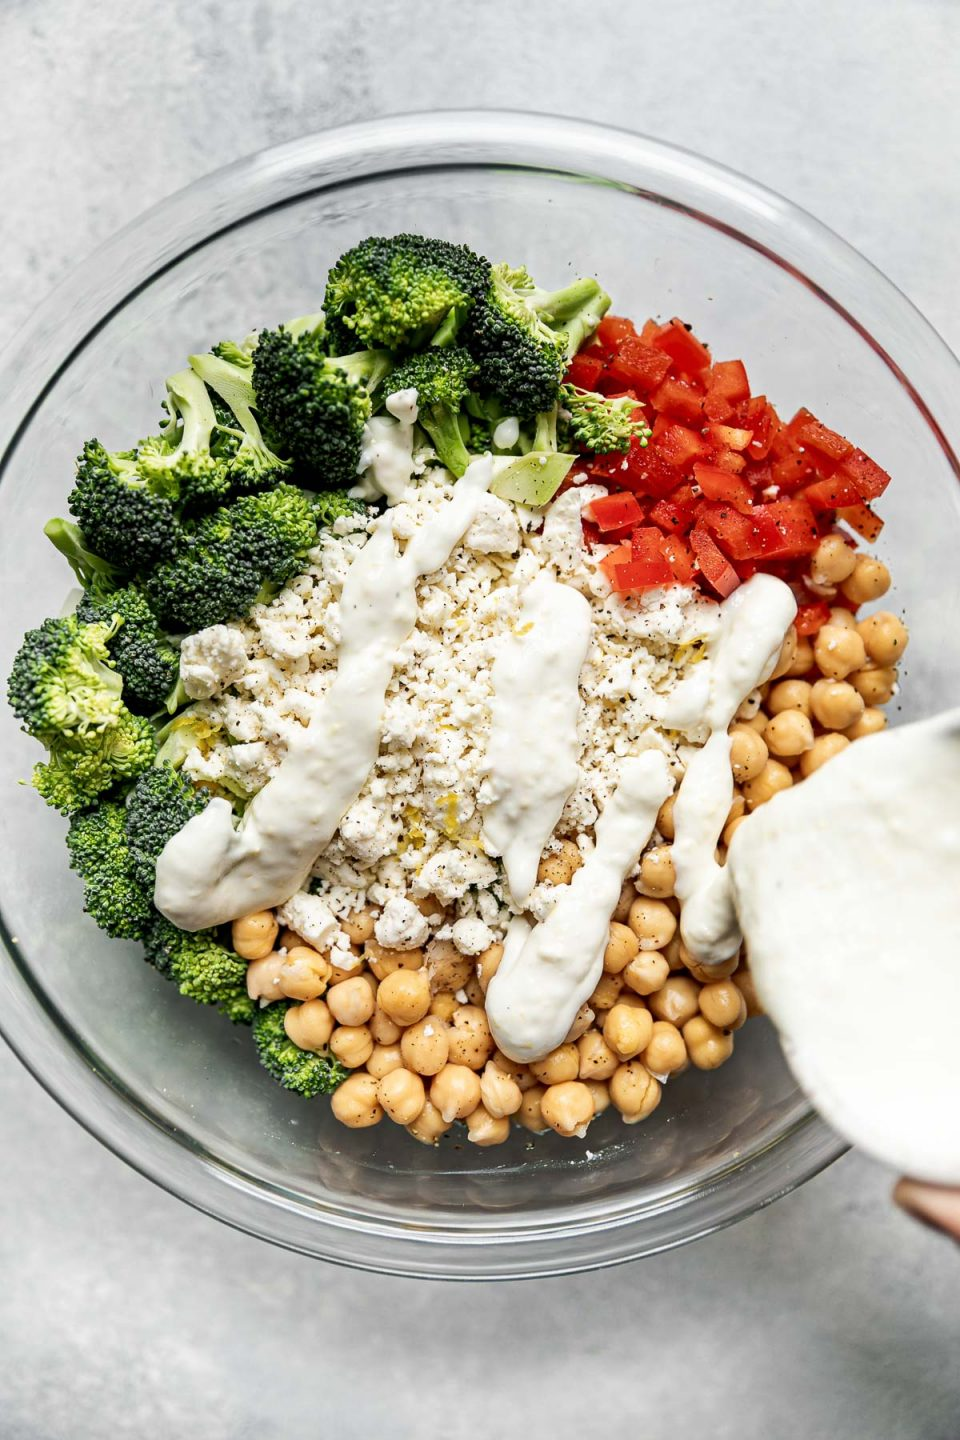 Pouring Greek yogurt dressing over broccoli salad ingredients (broccoli florets, chickpeas, diced bell pepper & feta) shown in a large glass mixing bowl atop a light gray surface.